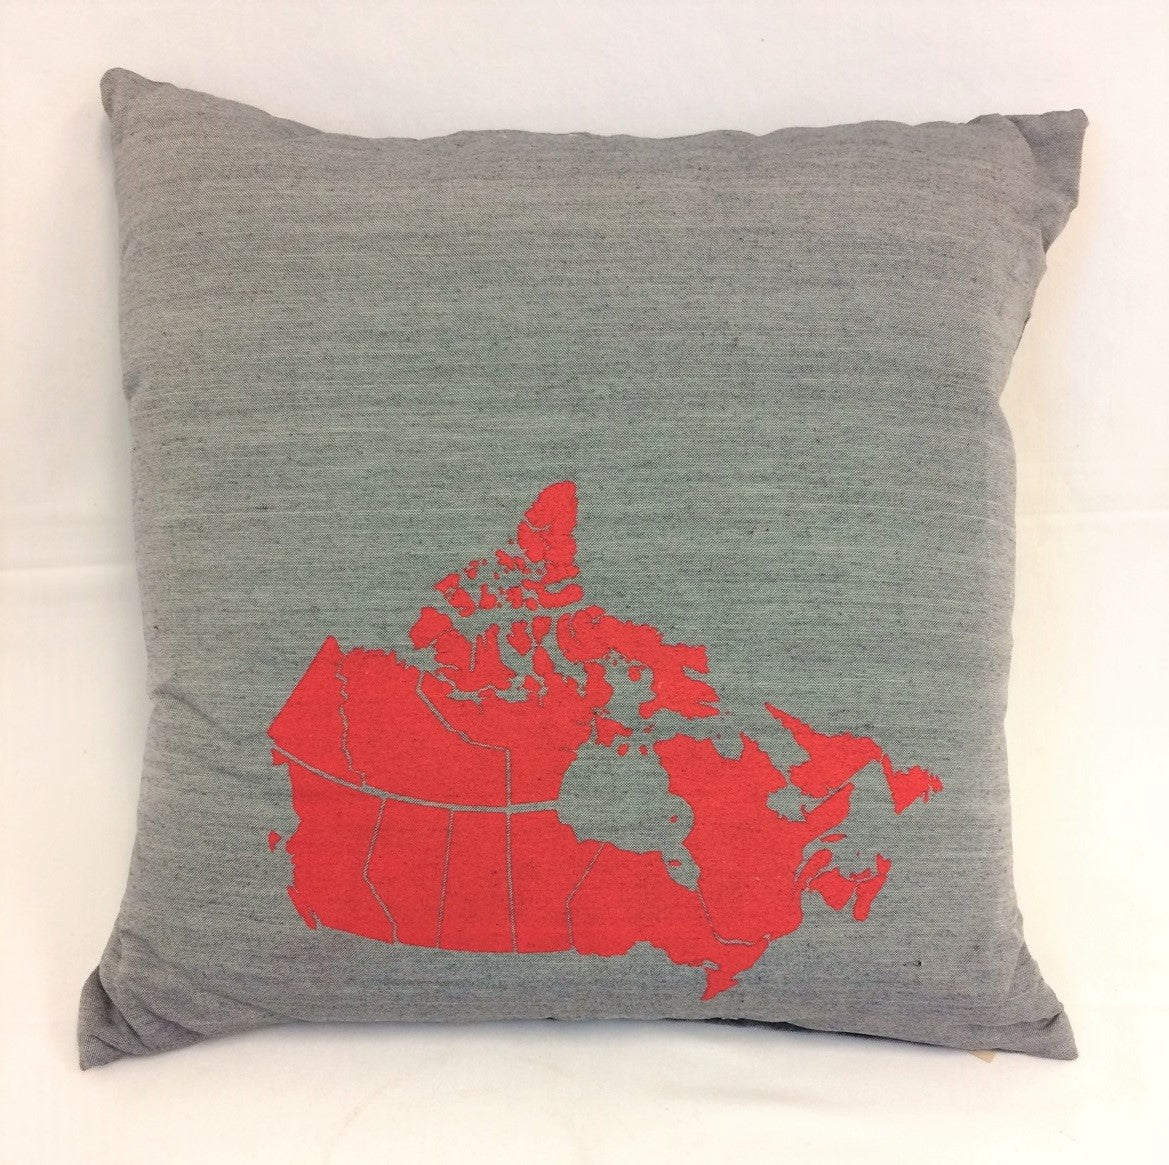 cushion - Canada Map - grey w/ red map - 40cm - COMPLETE